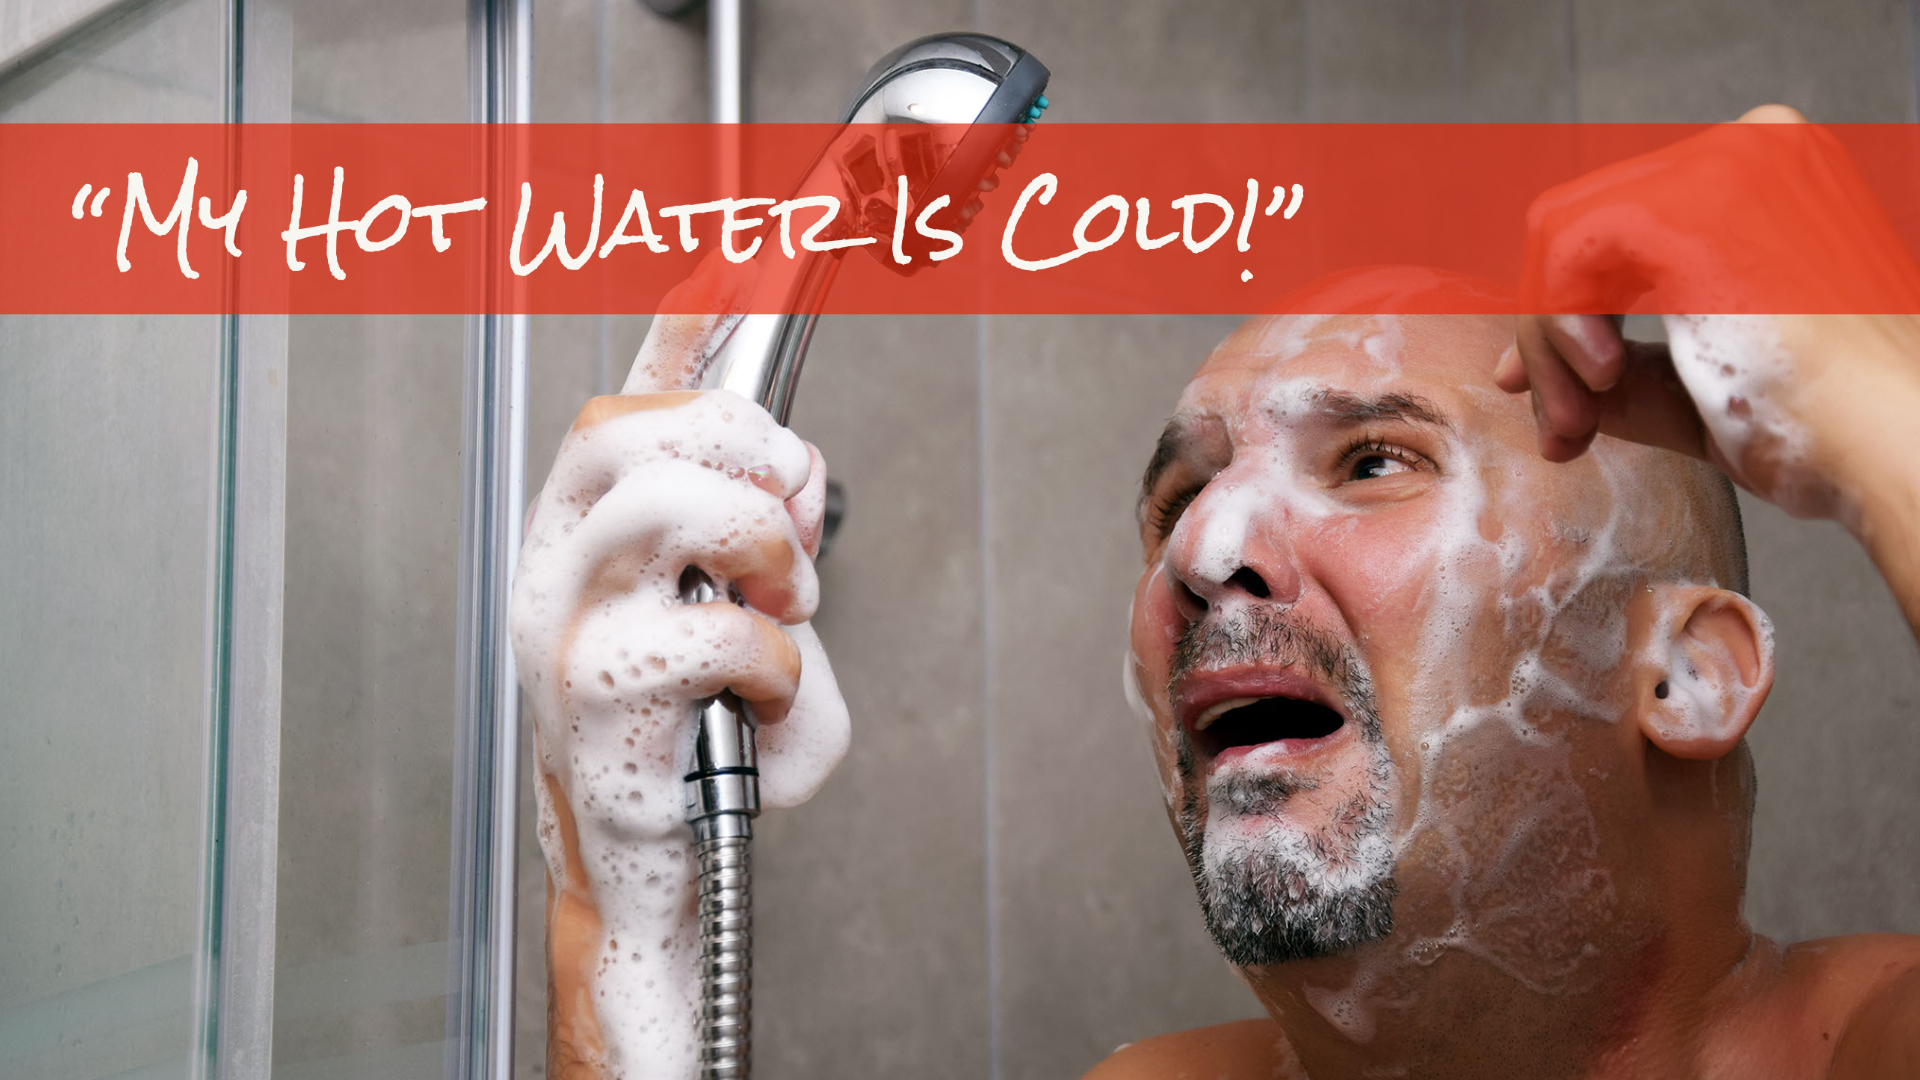 My hot water is cold man standing in shower with soap over face looking at shower head